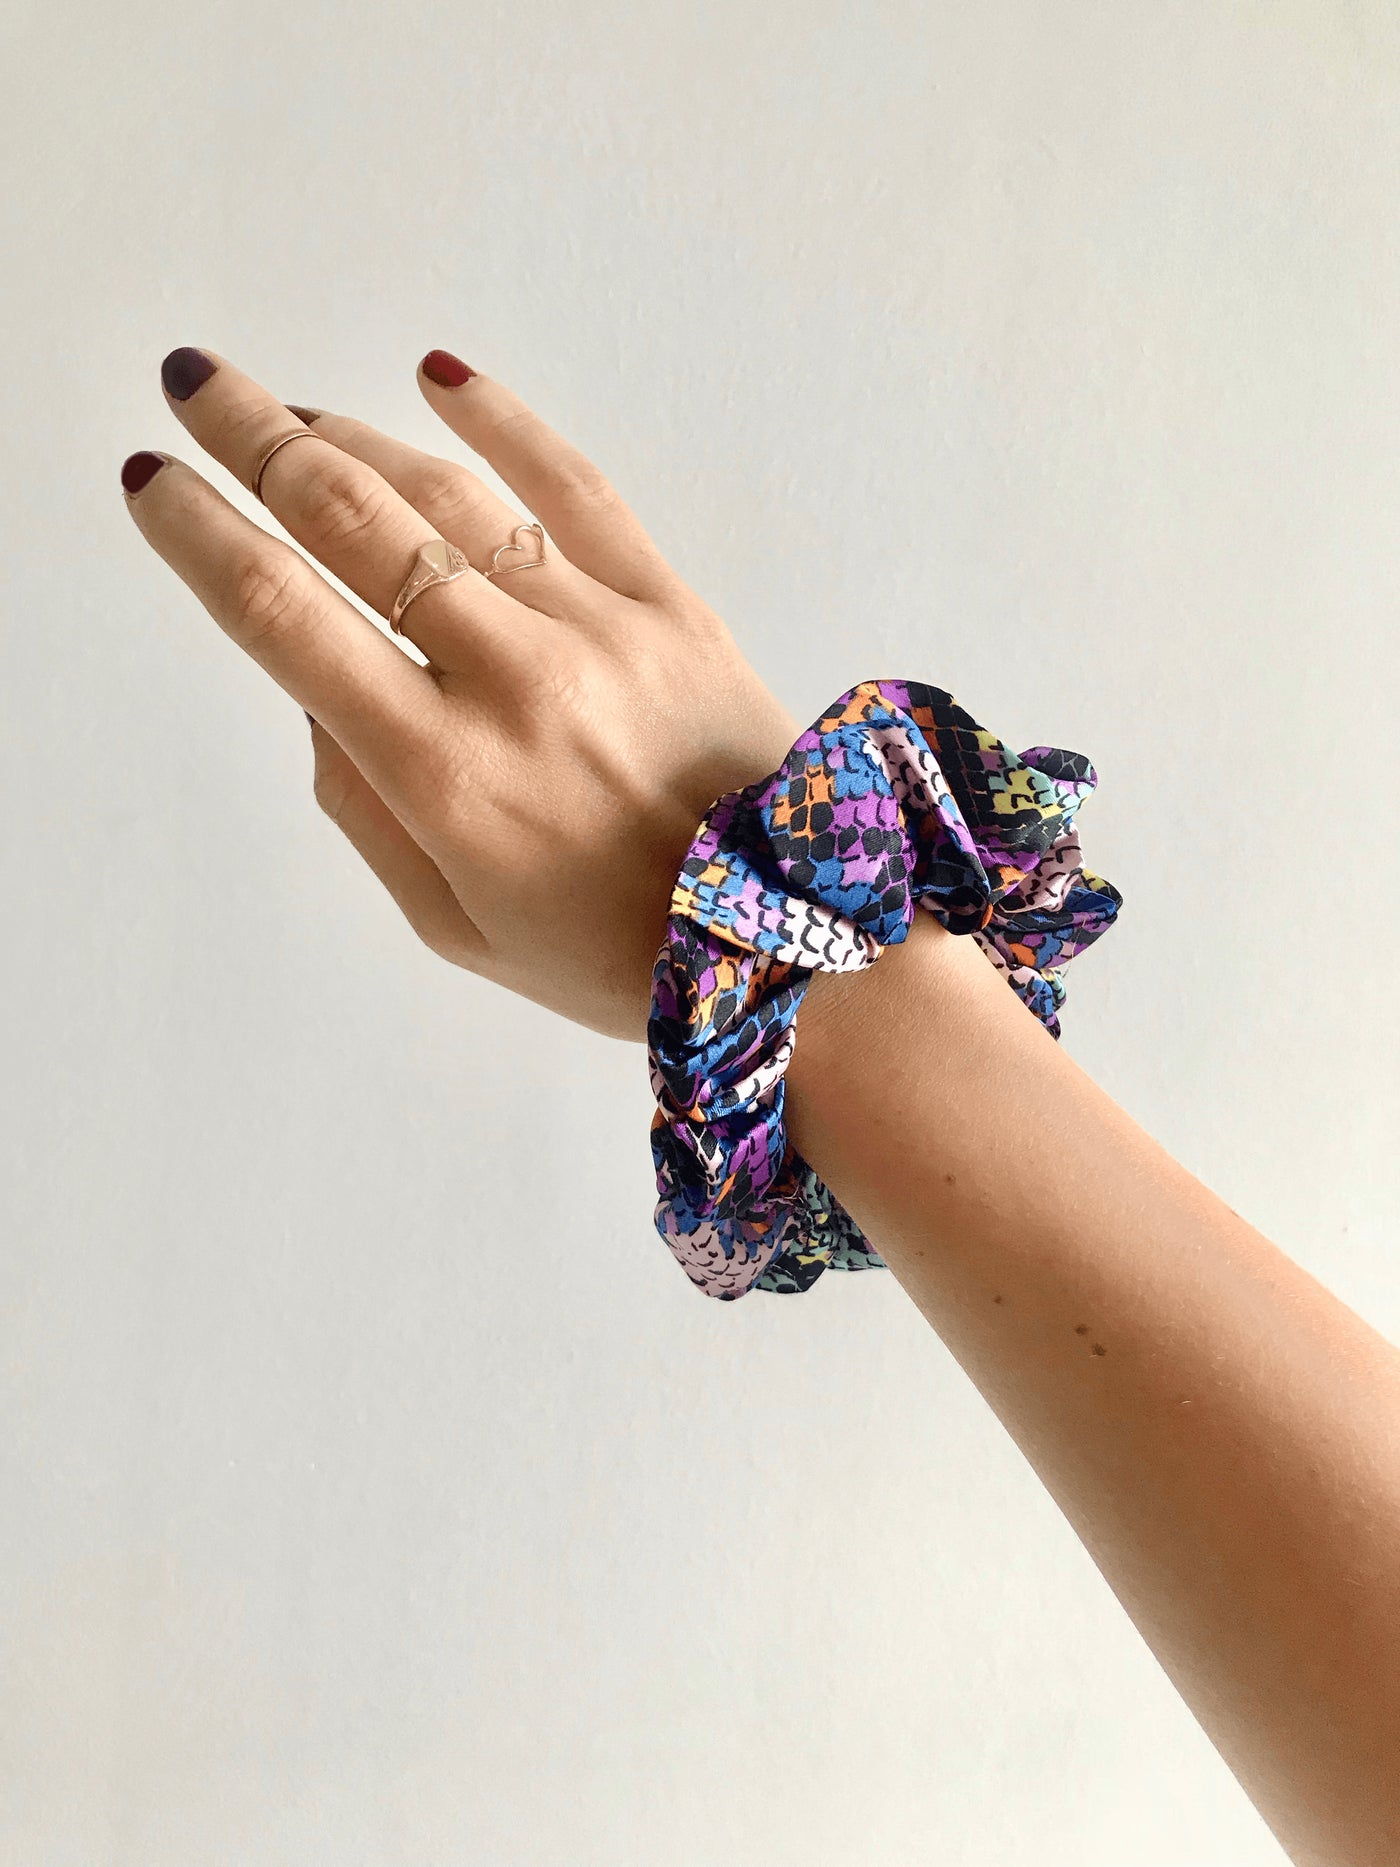 Dancing Leopard Multi Snake print scrunchie worn on wrist against white background